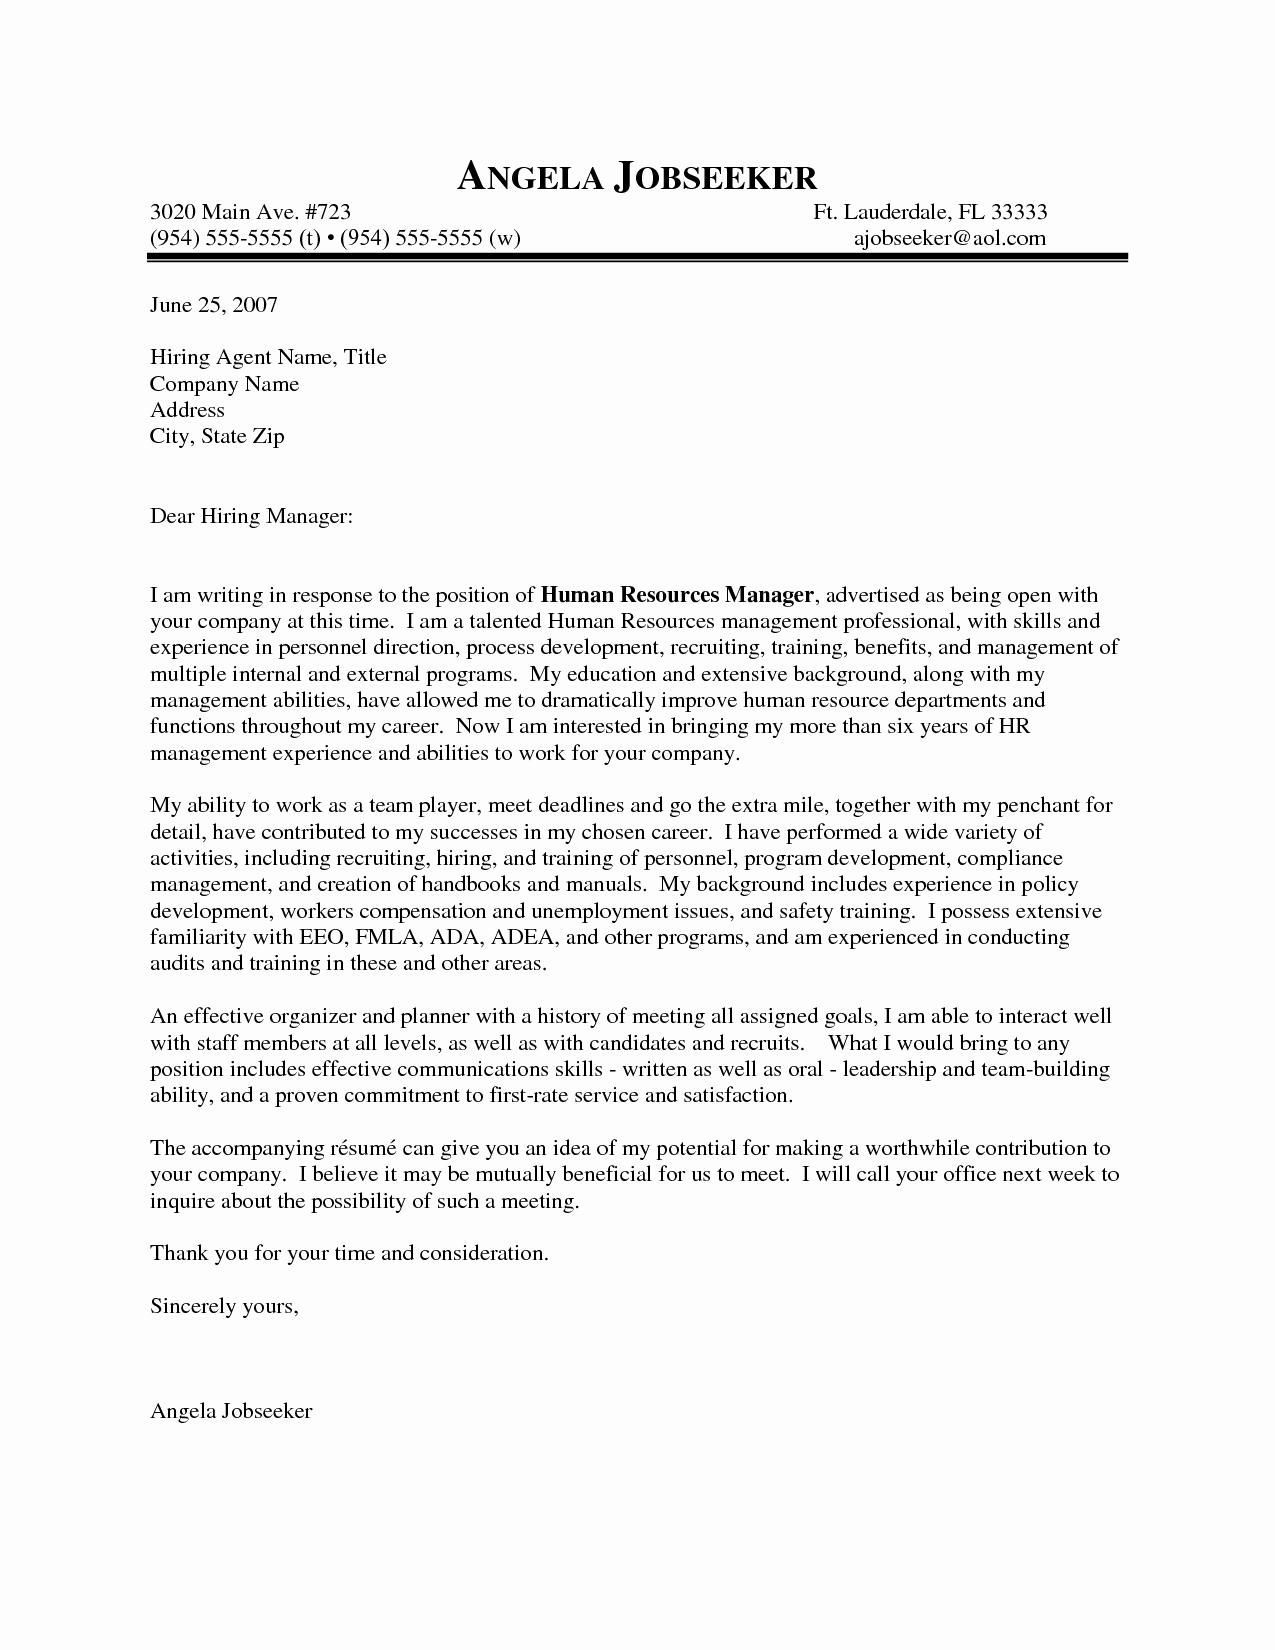 Statement Letter Sample Job Cover Letter Cover Letter Tips Best Cover Letter